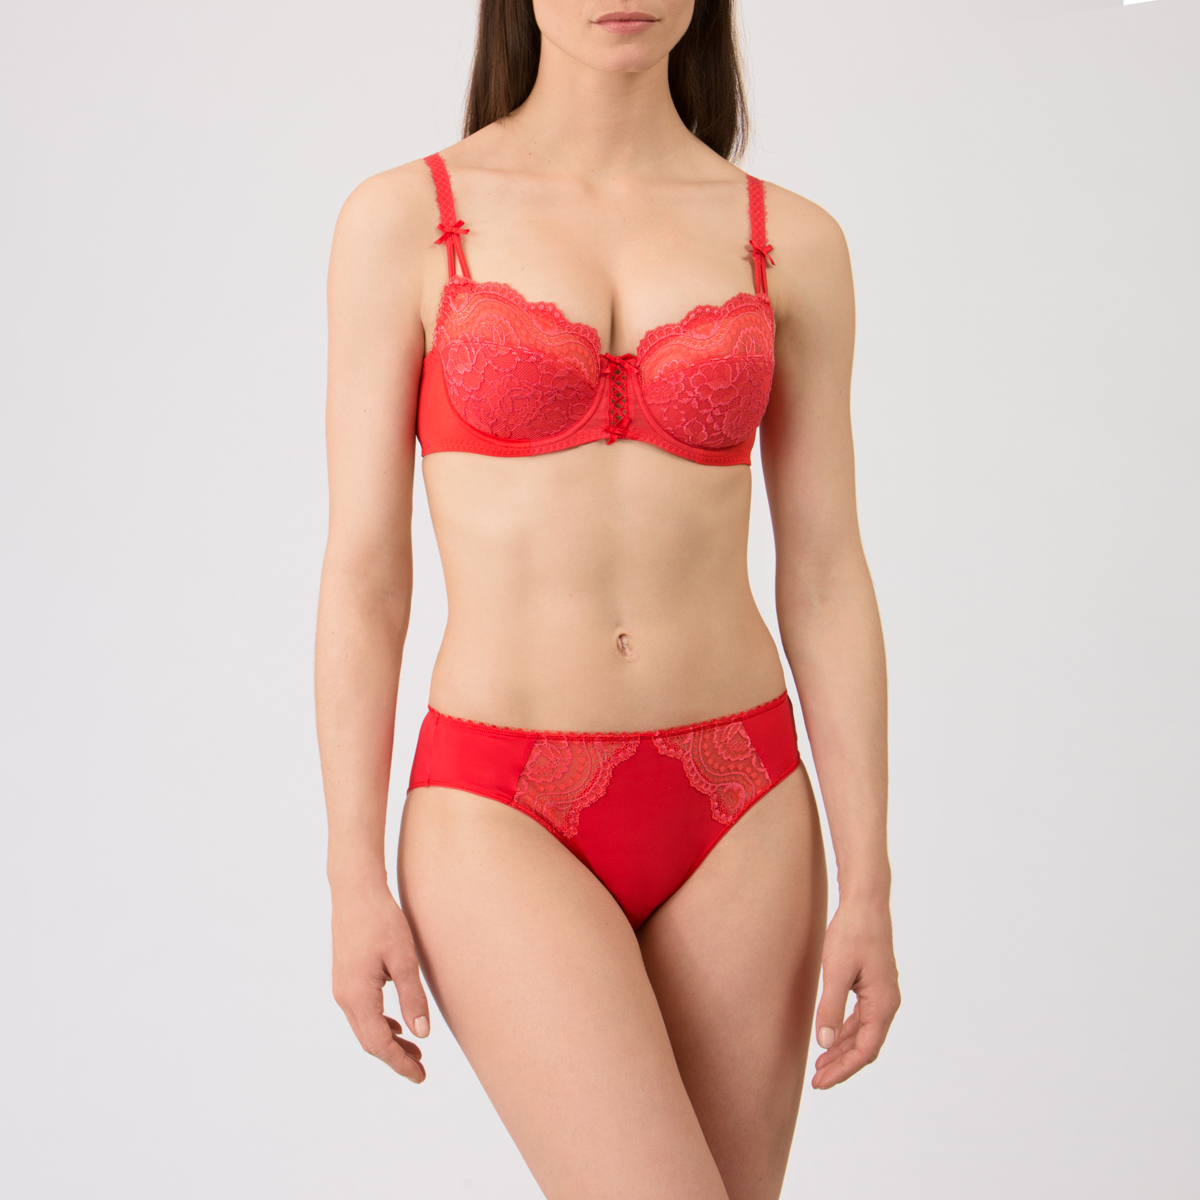 Balcony Bra in Red – Flower Elegance-PLAYTEX